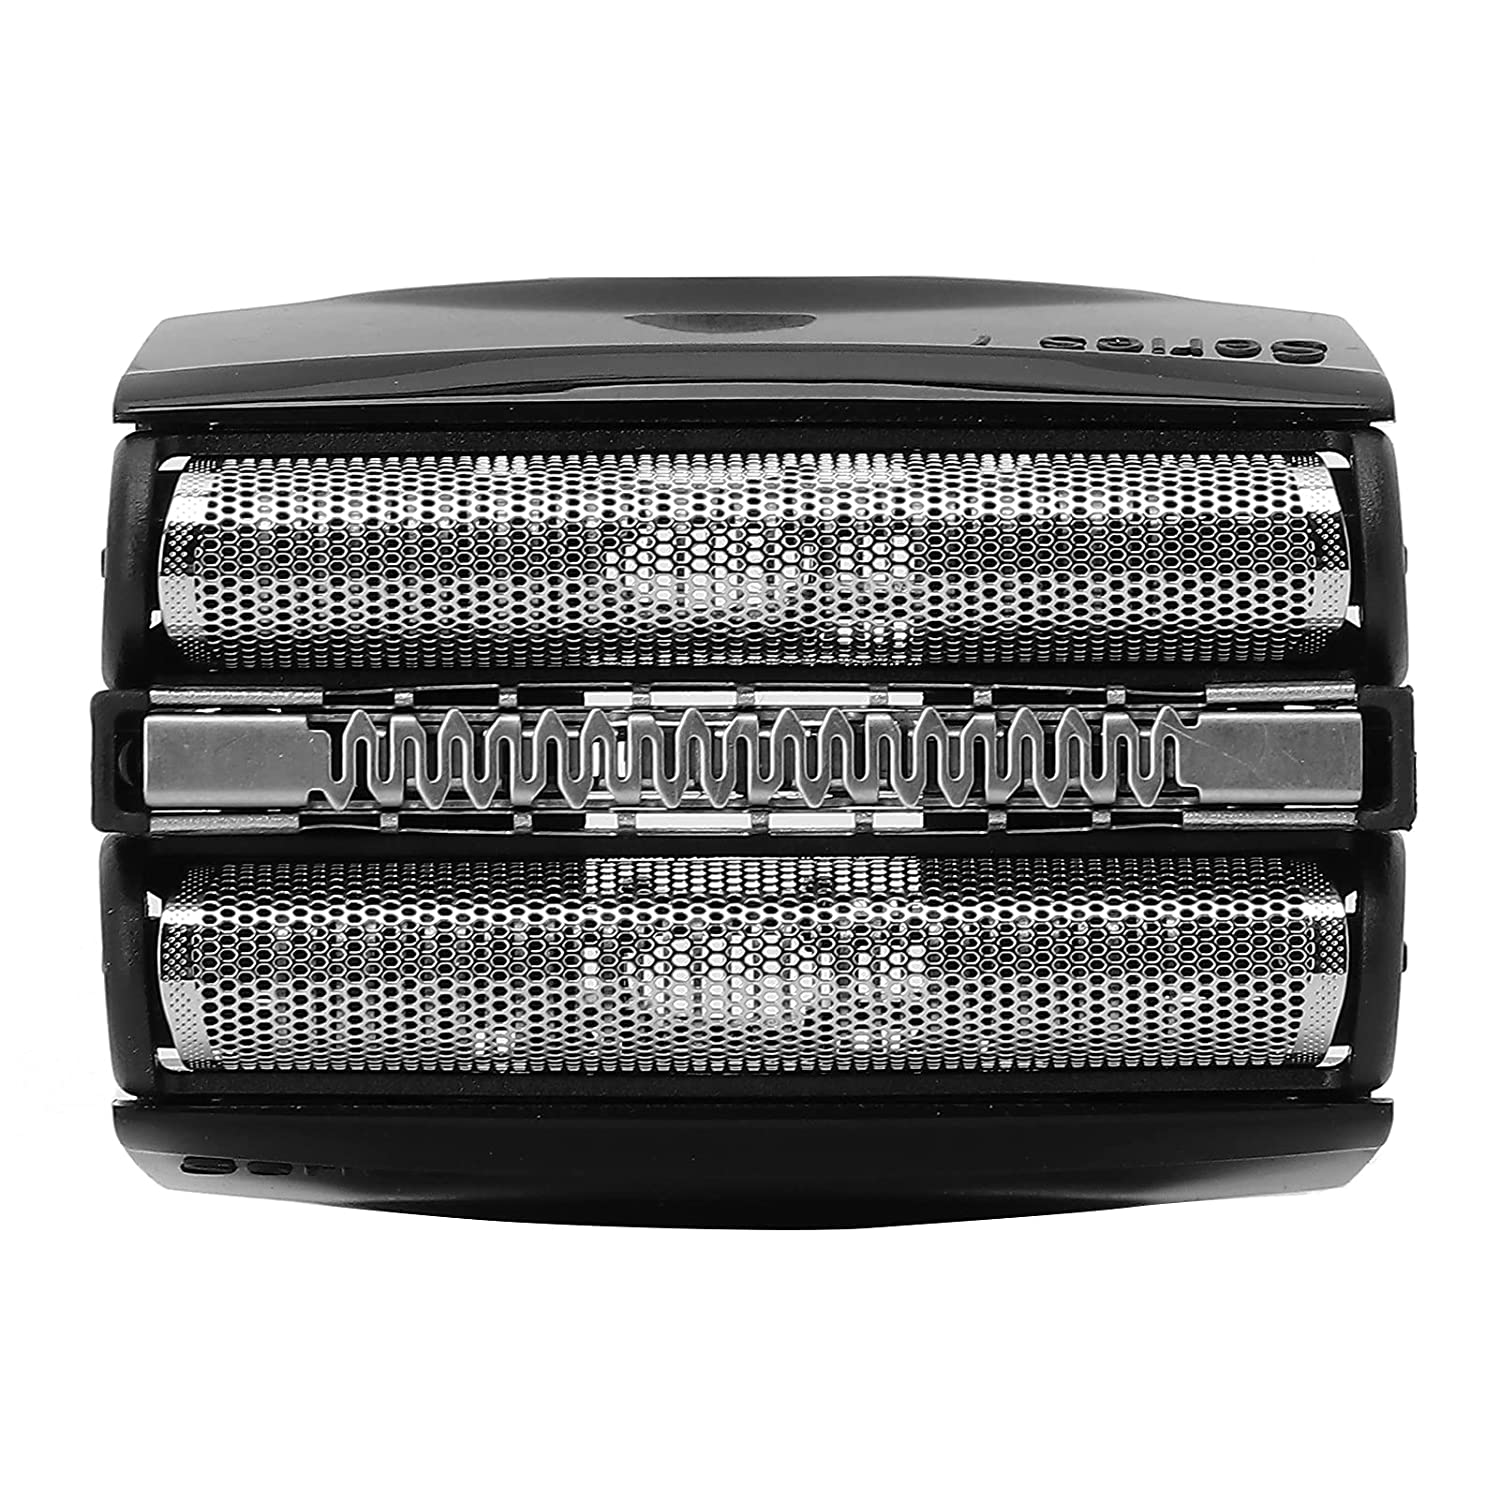 Electric Max 54% OFF Shaver Foil Head for Replace Shav Easily Gifts Your